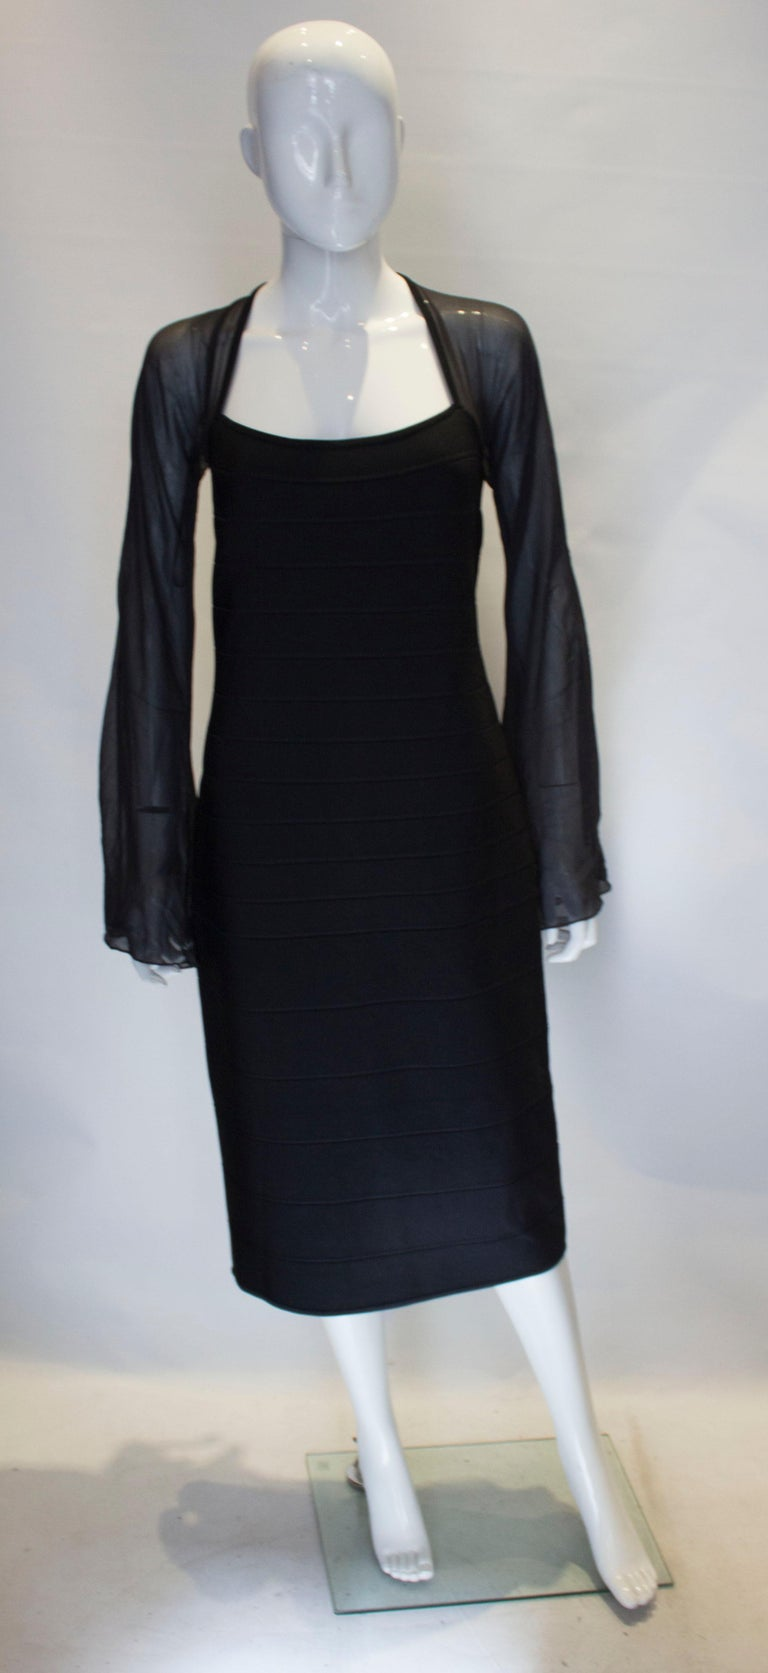 A chic Herve Leger dress  in black . This dress is unusual having long sleeves. It has a square neckline, and central back zip. The size has a some stretch.